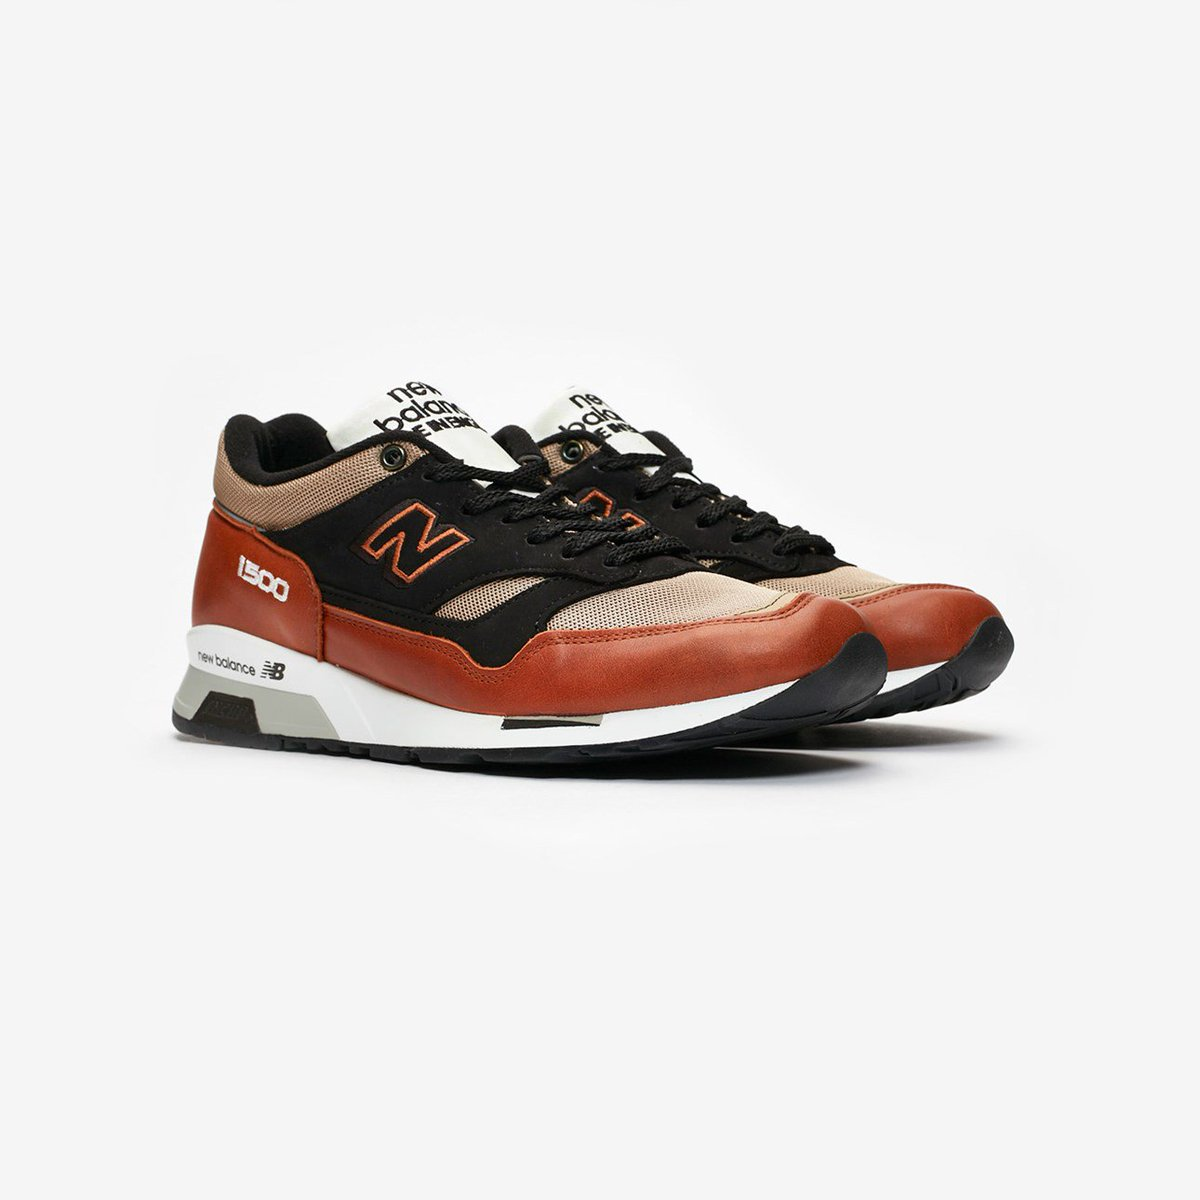 6cca372b32ba The New Balance M1500 has now released online & in-store (Paris, London,  Berlin, Stockholm) --- https://bit.ly/2TR5lus #NewBalance  #M1500pic.twitter.com/ ...